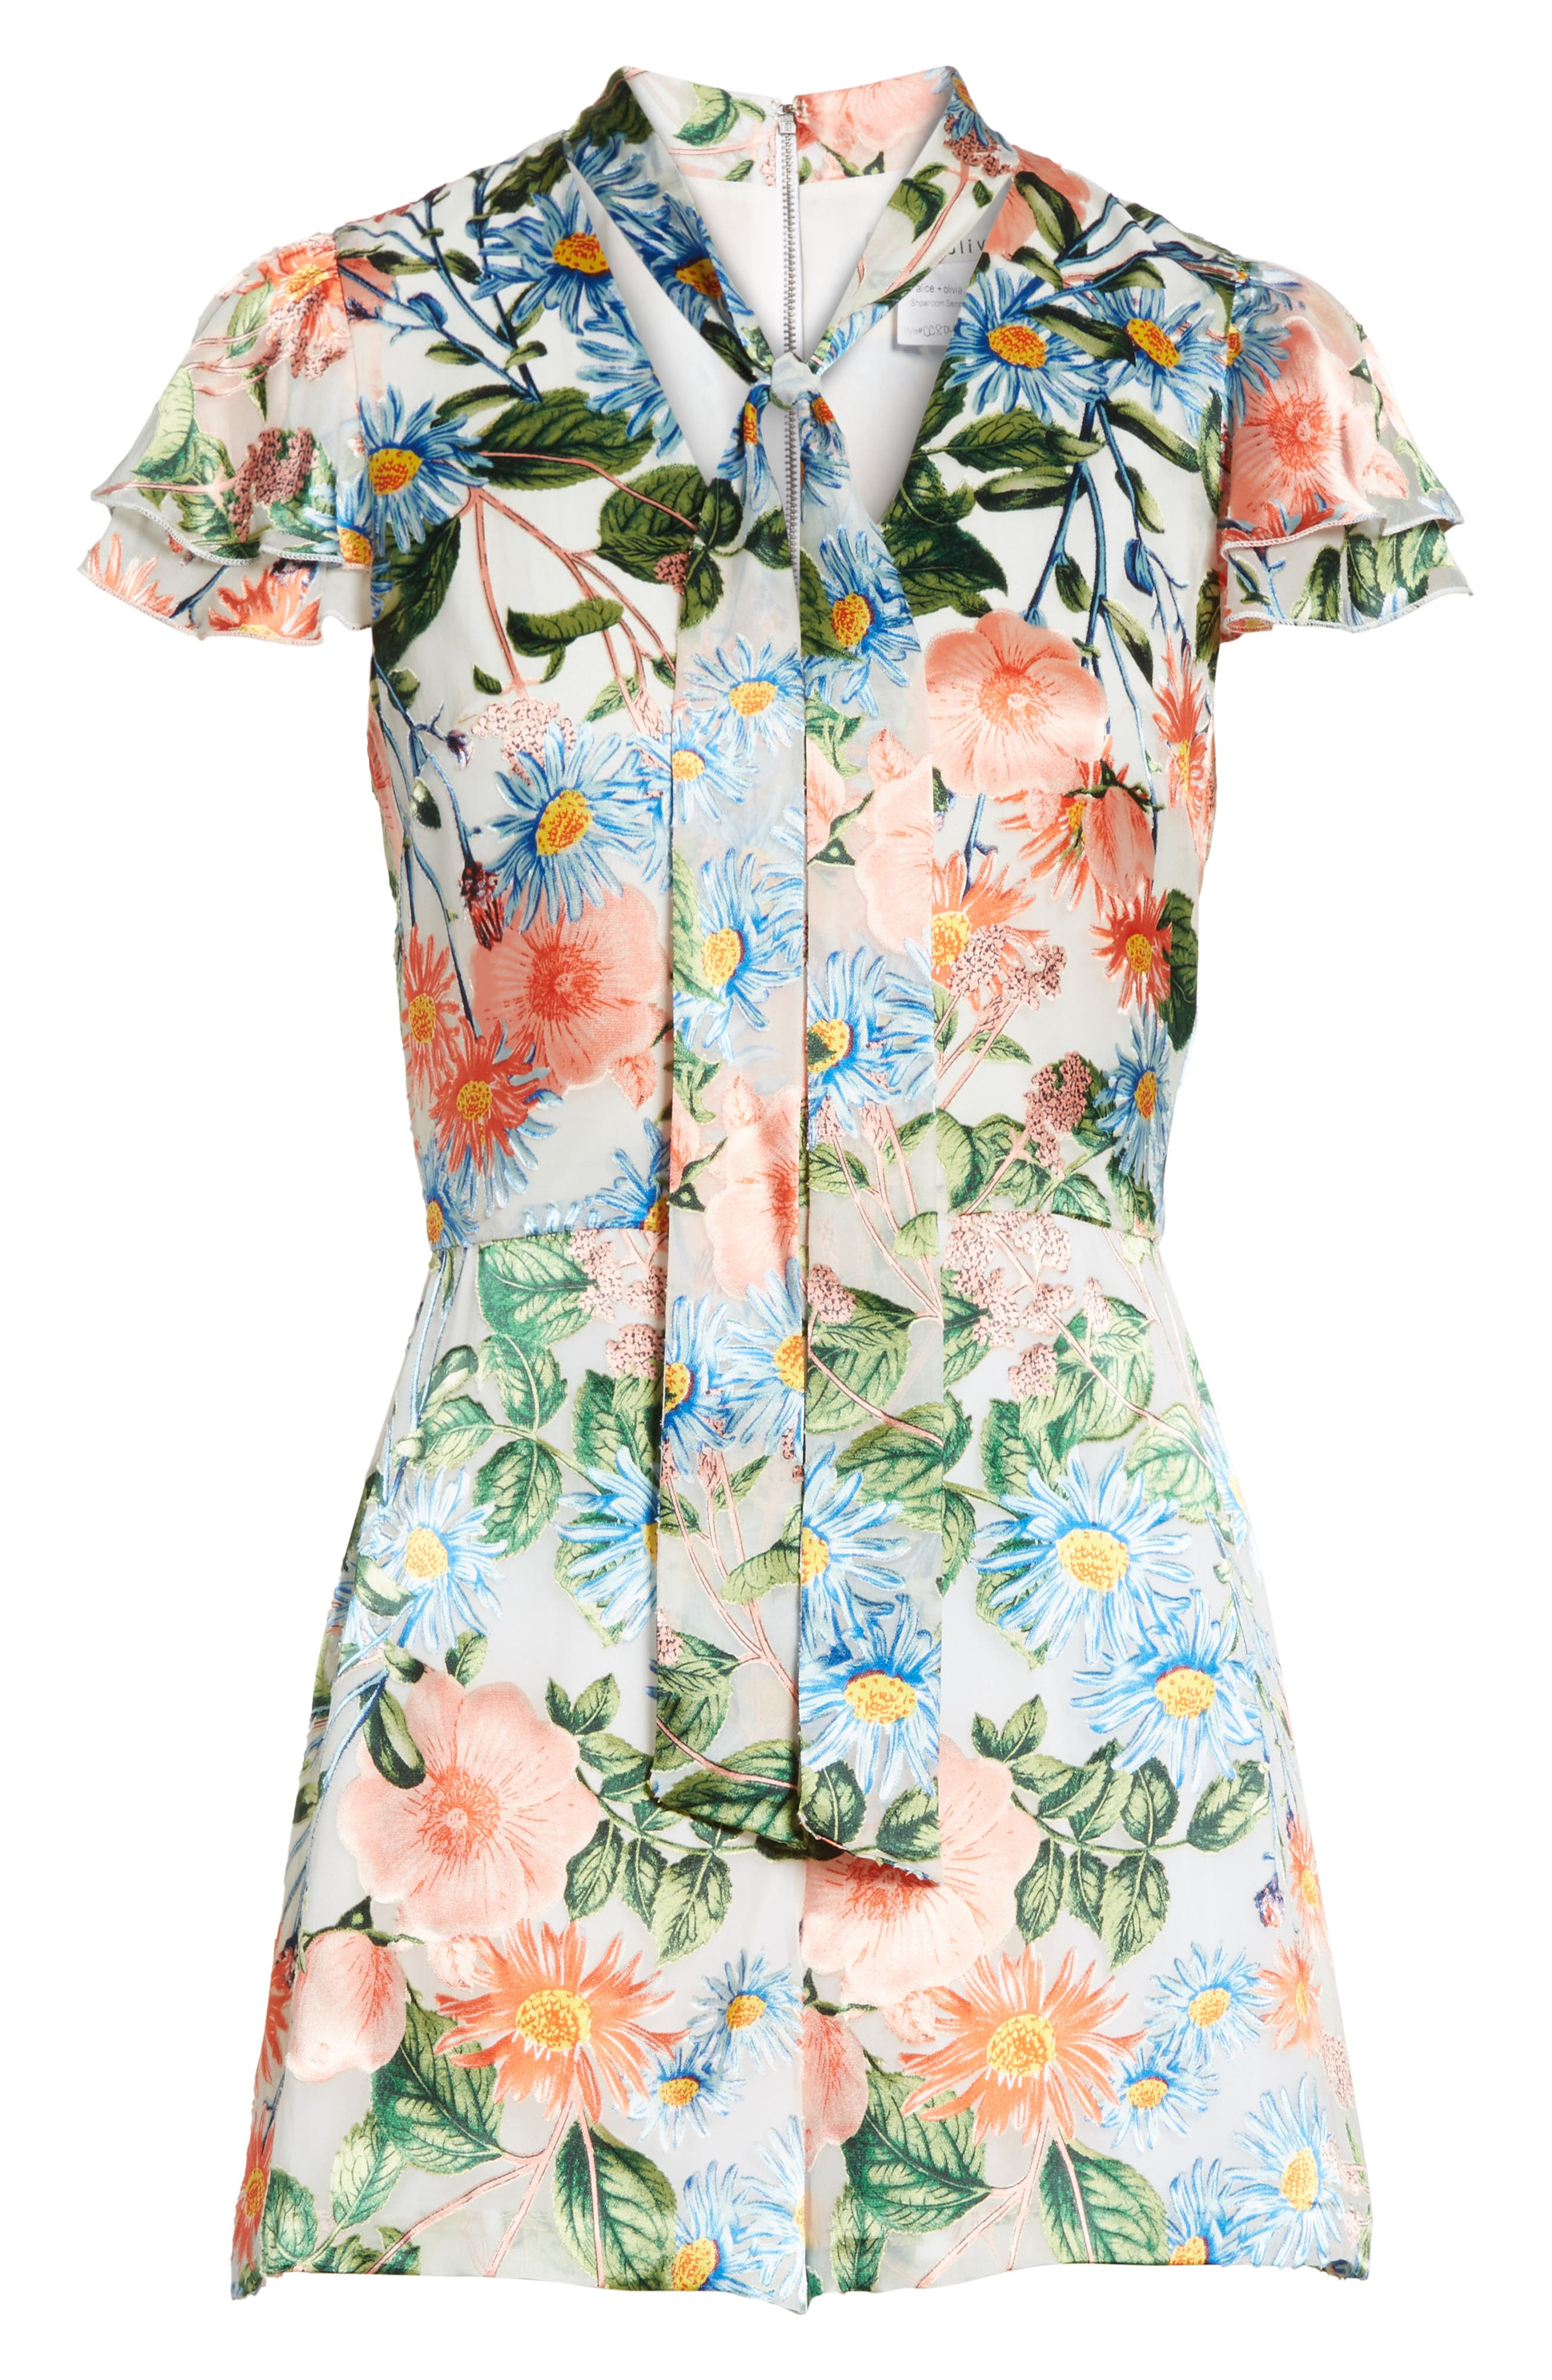 Macall Floral Ruffle Sleeve Romper,                             Alternate thumbnail 6, color,                             400